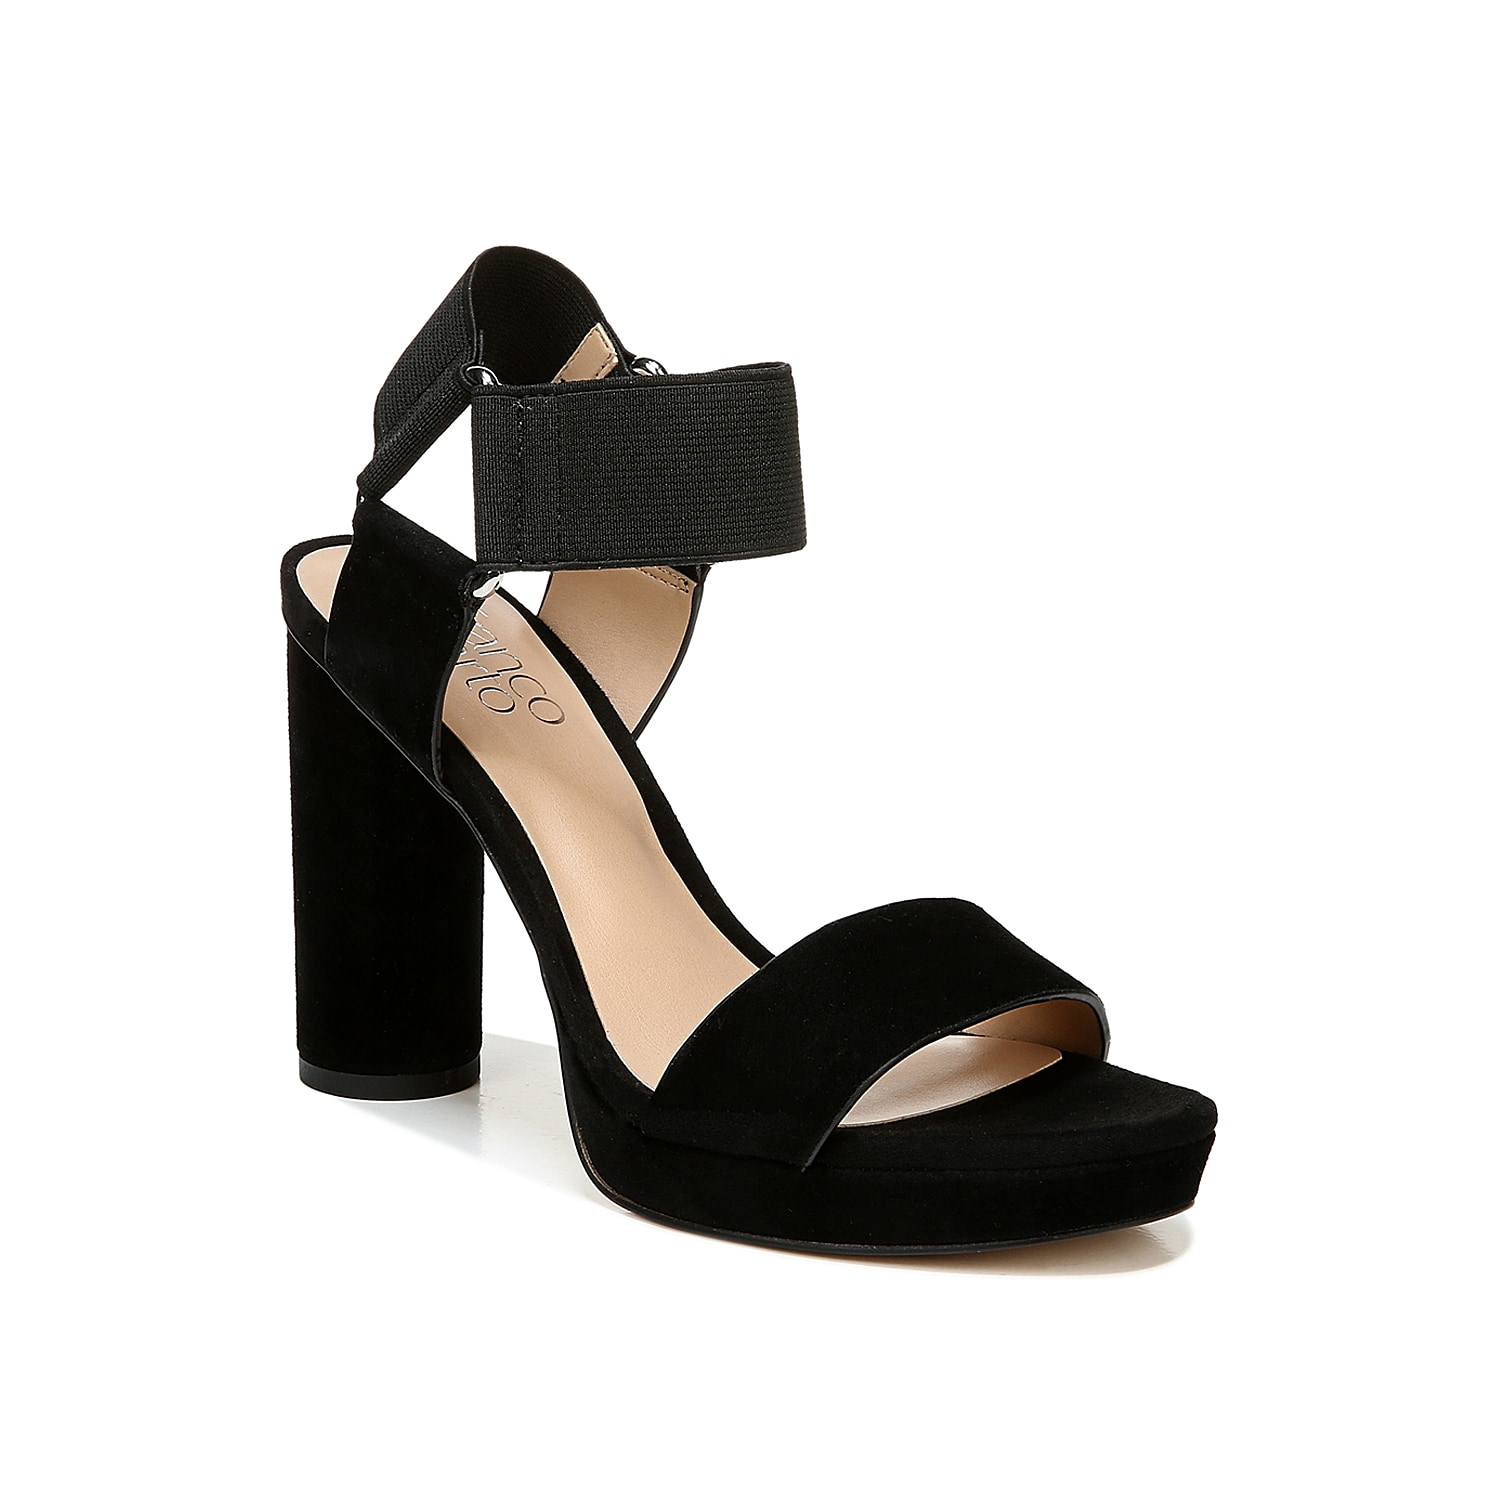 The Napoli platform sandal from Franco Sarto is a blend of posh looks and premium comfort. The elasticated ankle straps let you conveniently pull on this sandal without any closure hassle.